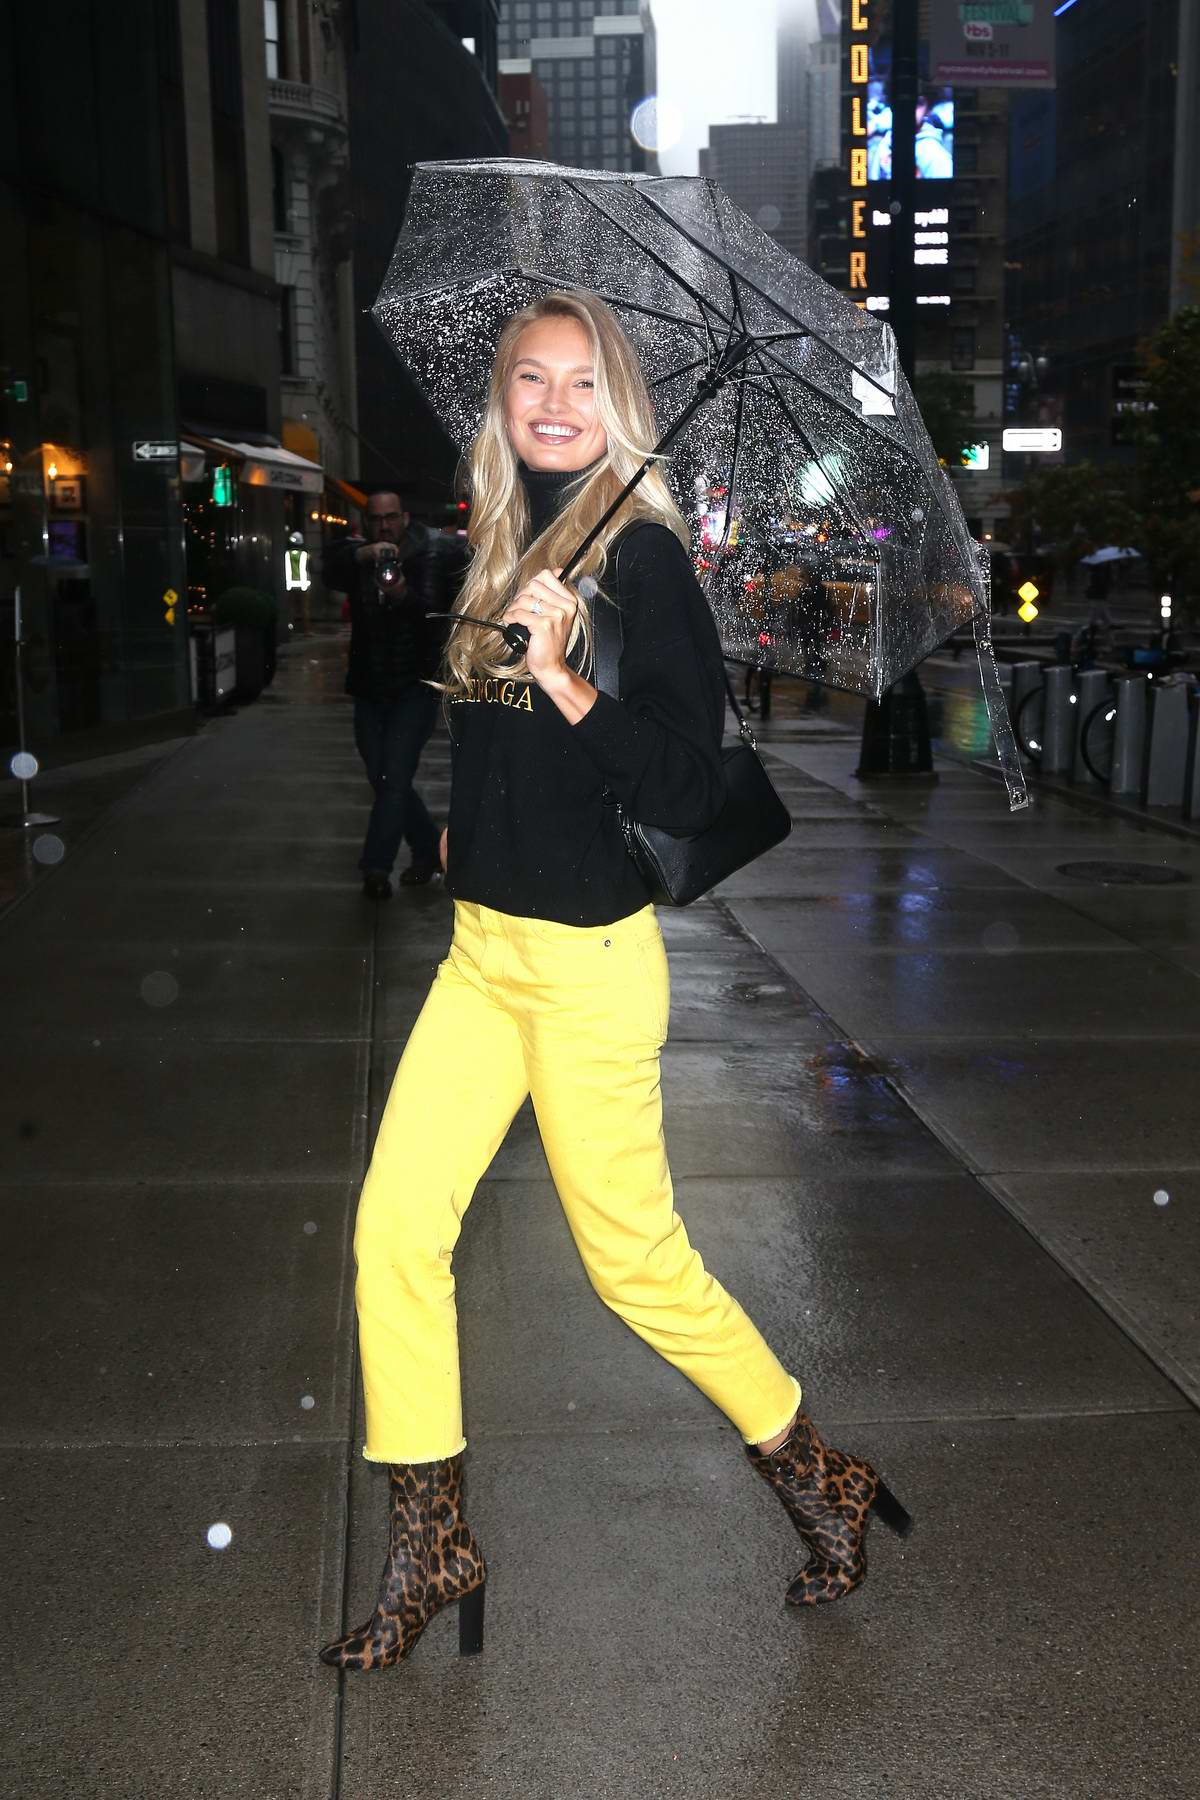 Romee Strijd stands out in bright yellow jeans and Balenciaga turtleneck paired with leopard print boots as she visits Victoria's Secret offices in New York City